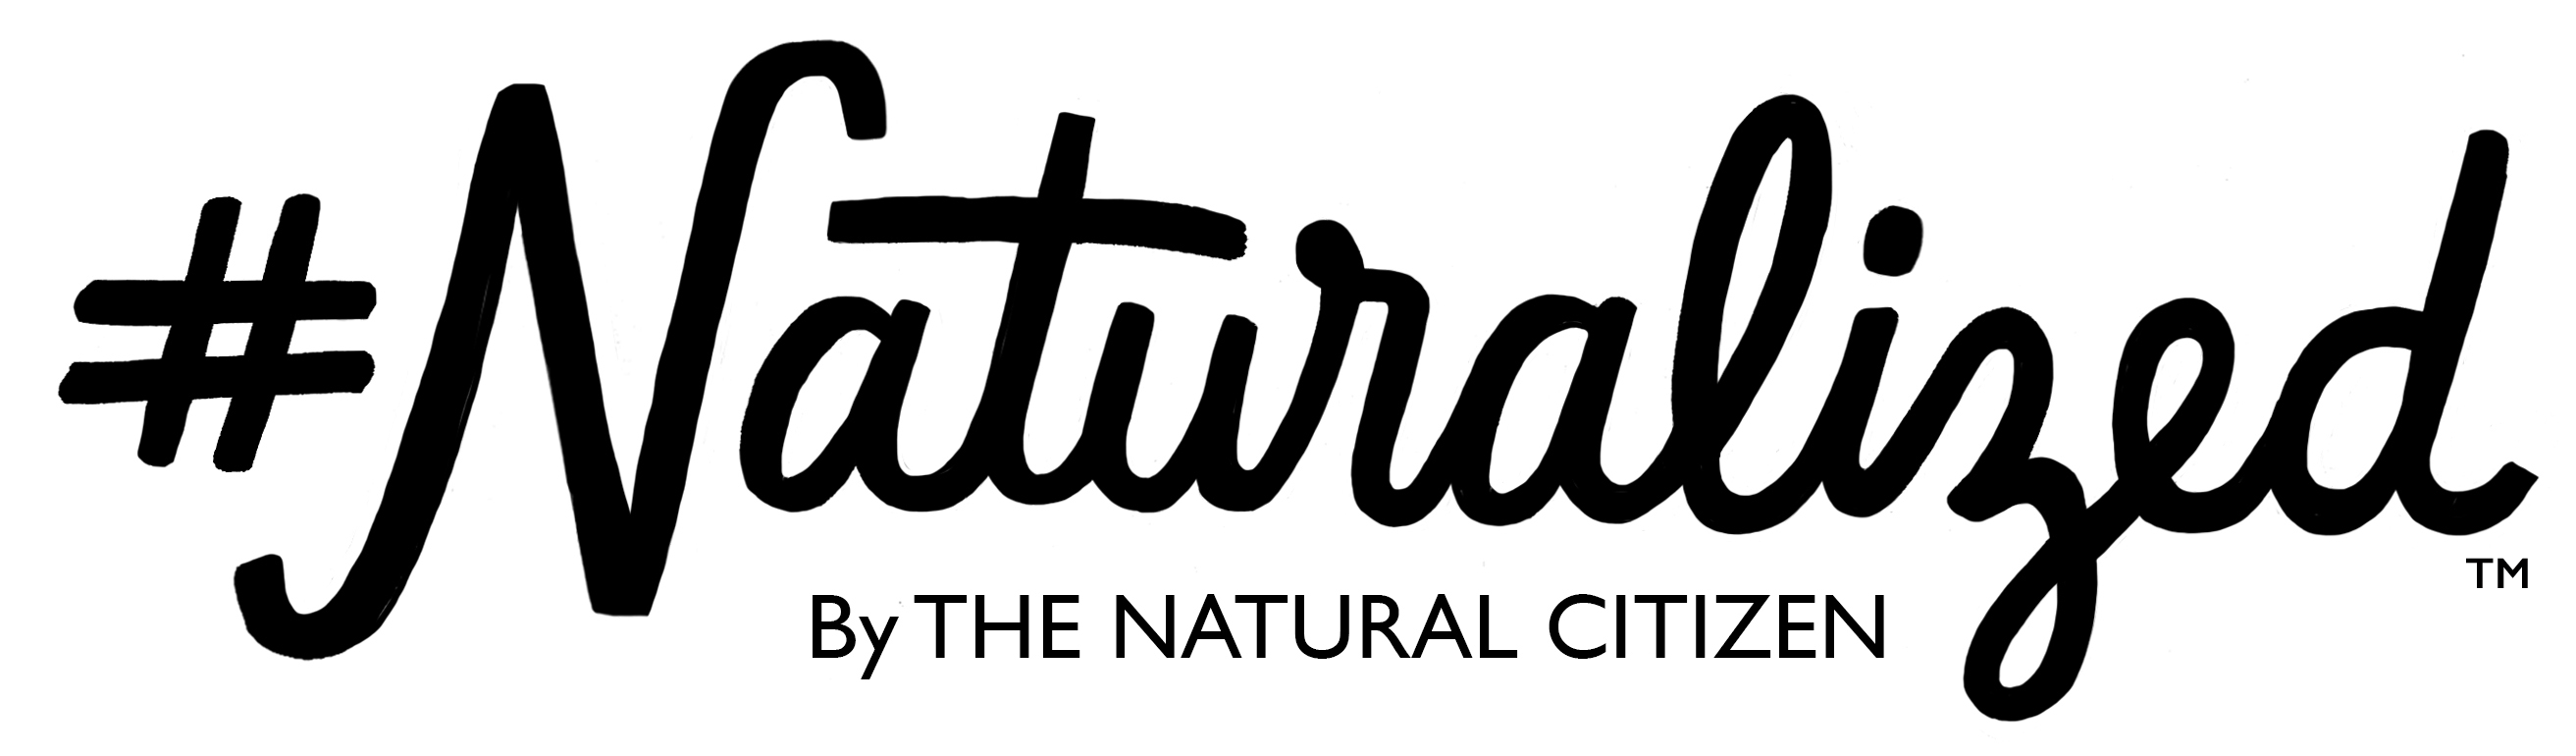 The Natural Citizen Blog